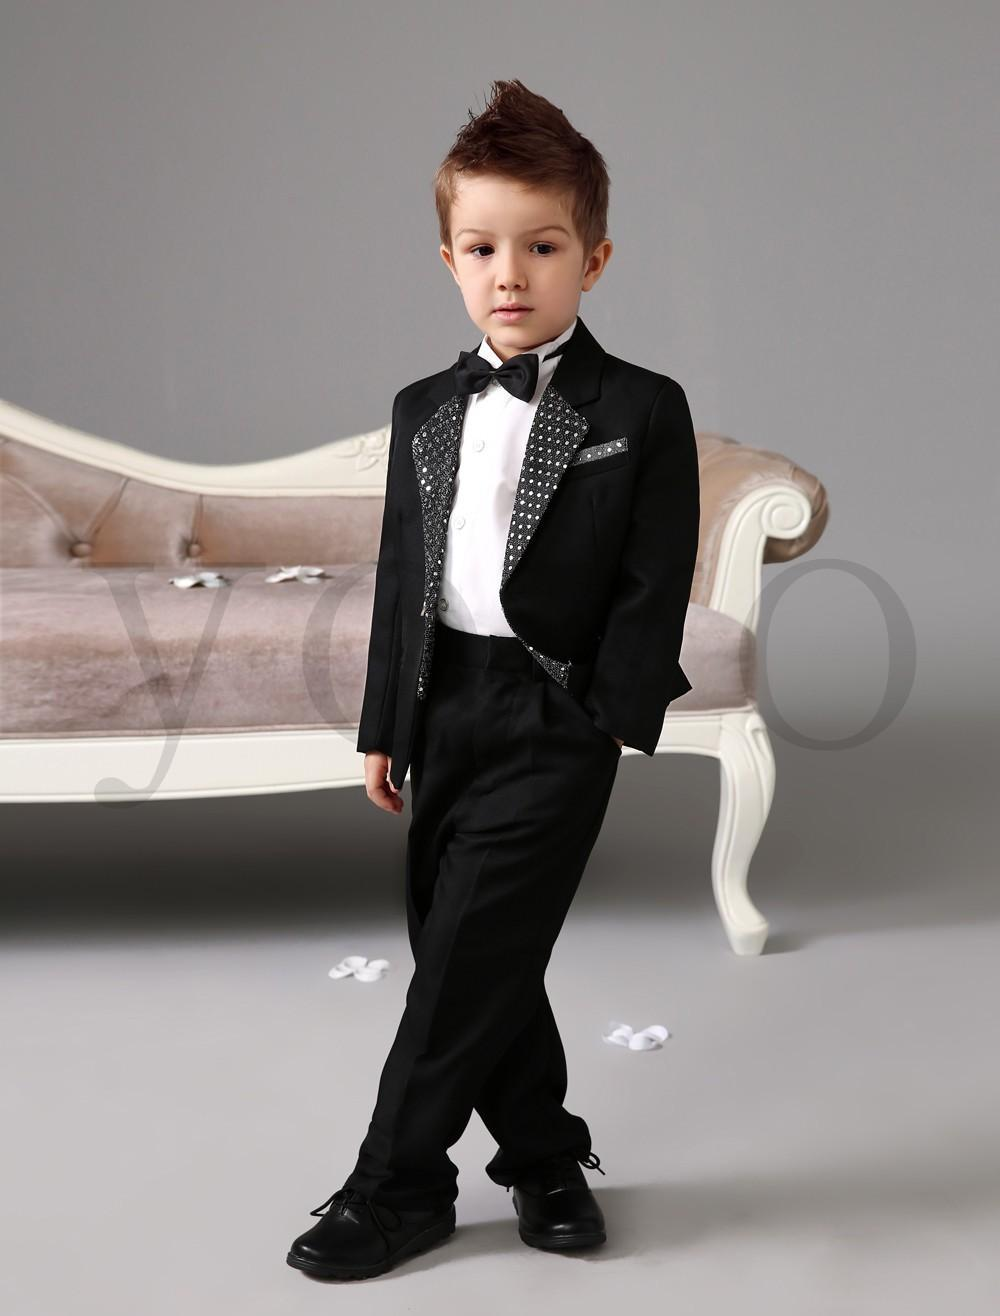 Wholesale Price Handsome Cute Boys Formal Occasion Attire Wedding